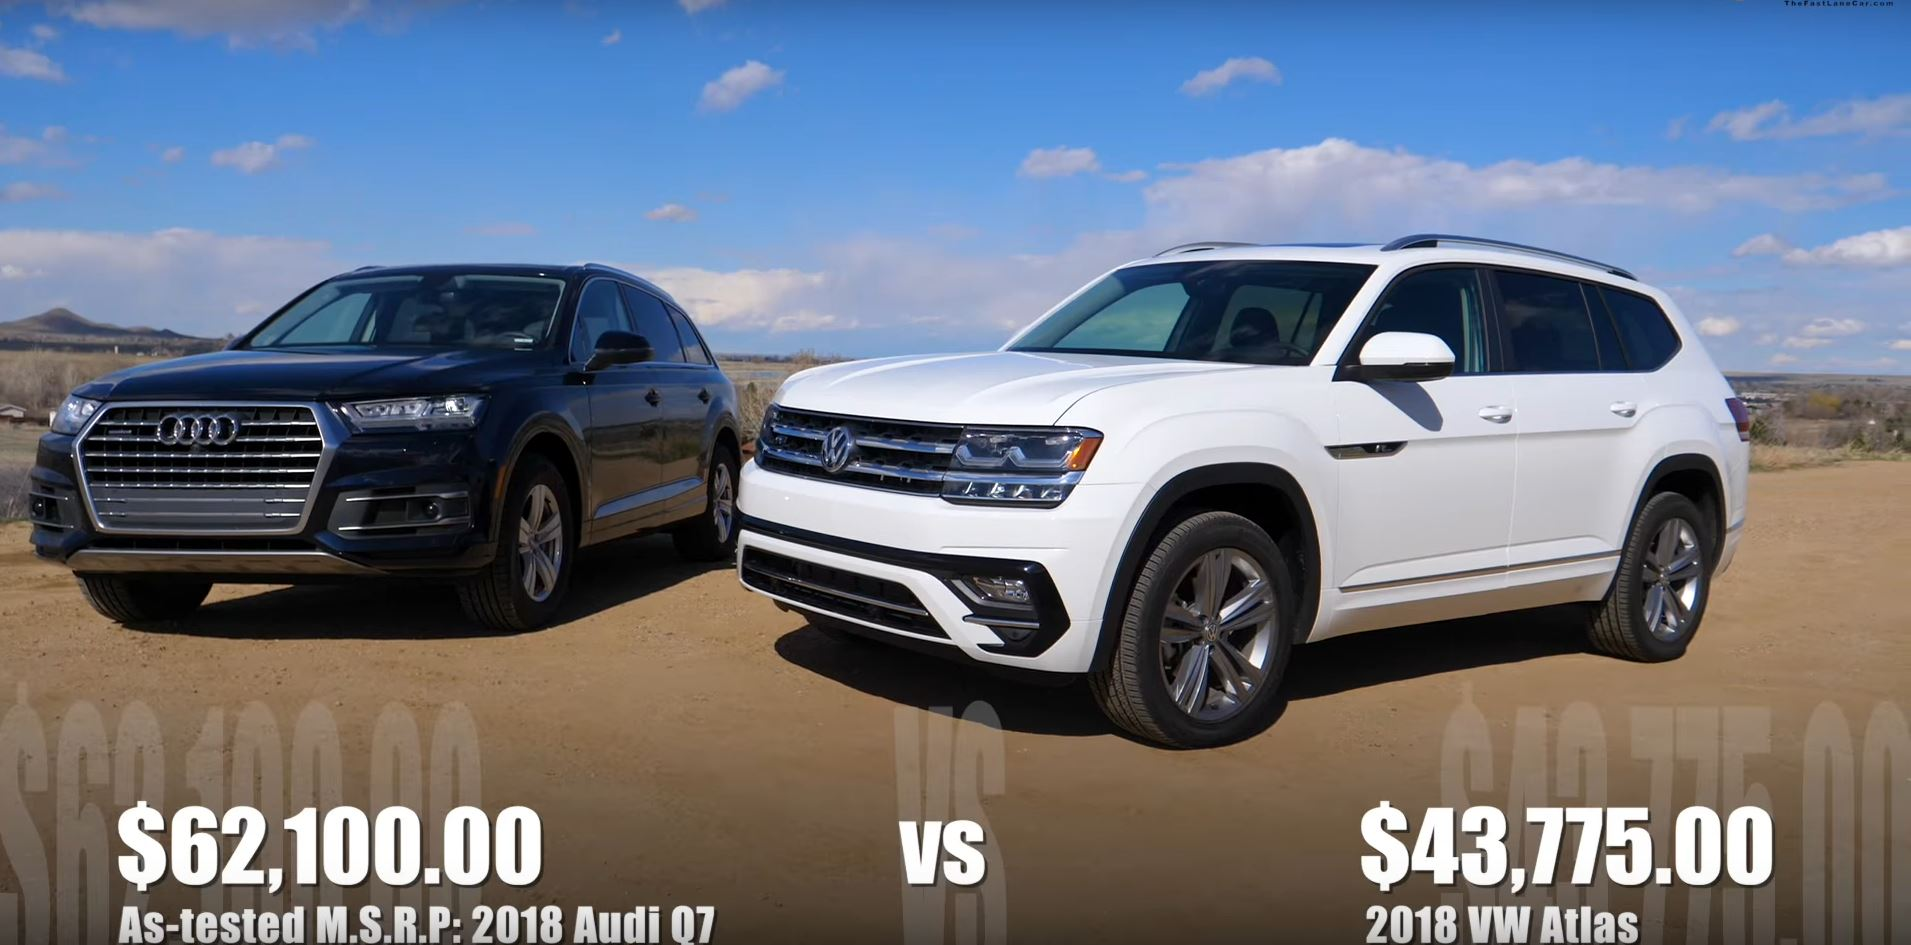 Is The Volkswagen Atlas An Audi Q For Less Autoevolution - Volkswagen audi